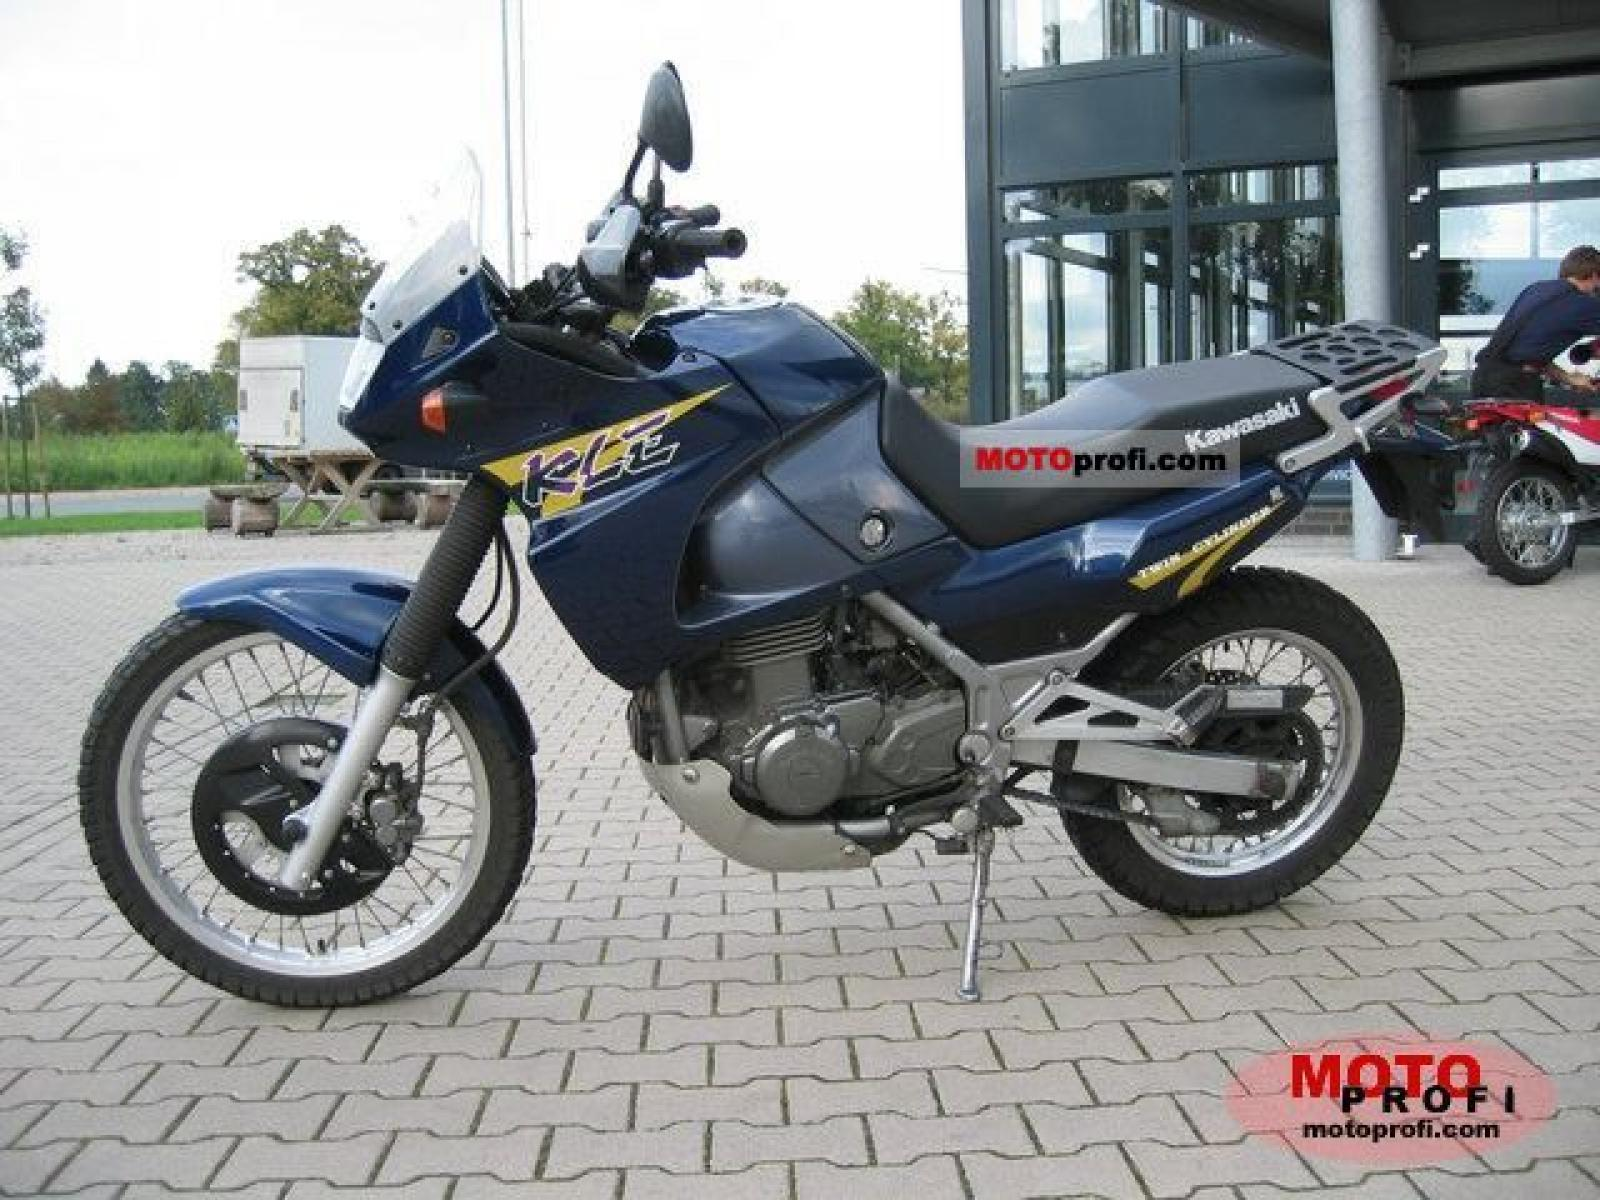 2001 kawasaki kle 500 pics specs and information. Black Bedroom Furniture Sets. Home Design Ideas